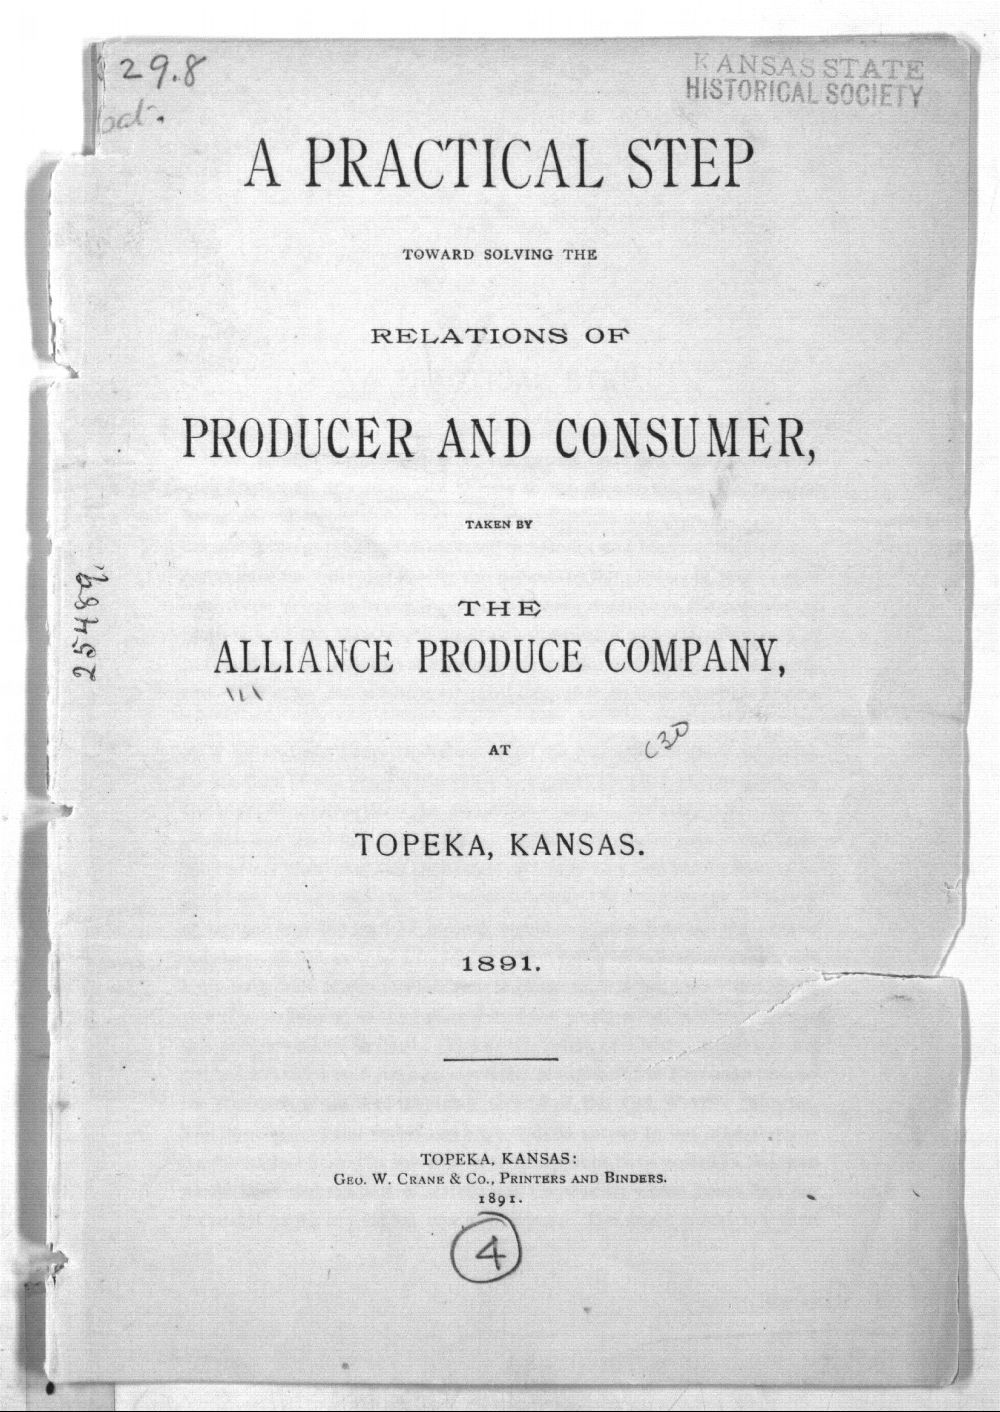 A practical step toward solving the relations of producer and consumer, taken by the Alliance Produce Company, at Topeka, Kansas - 1